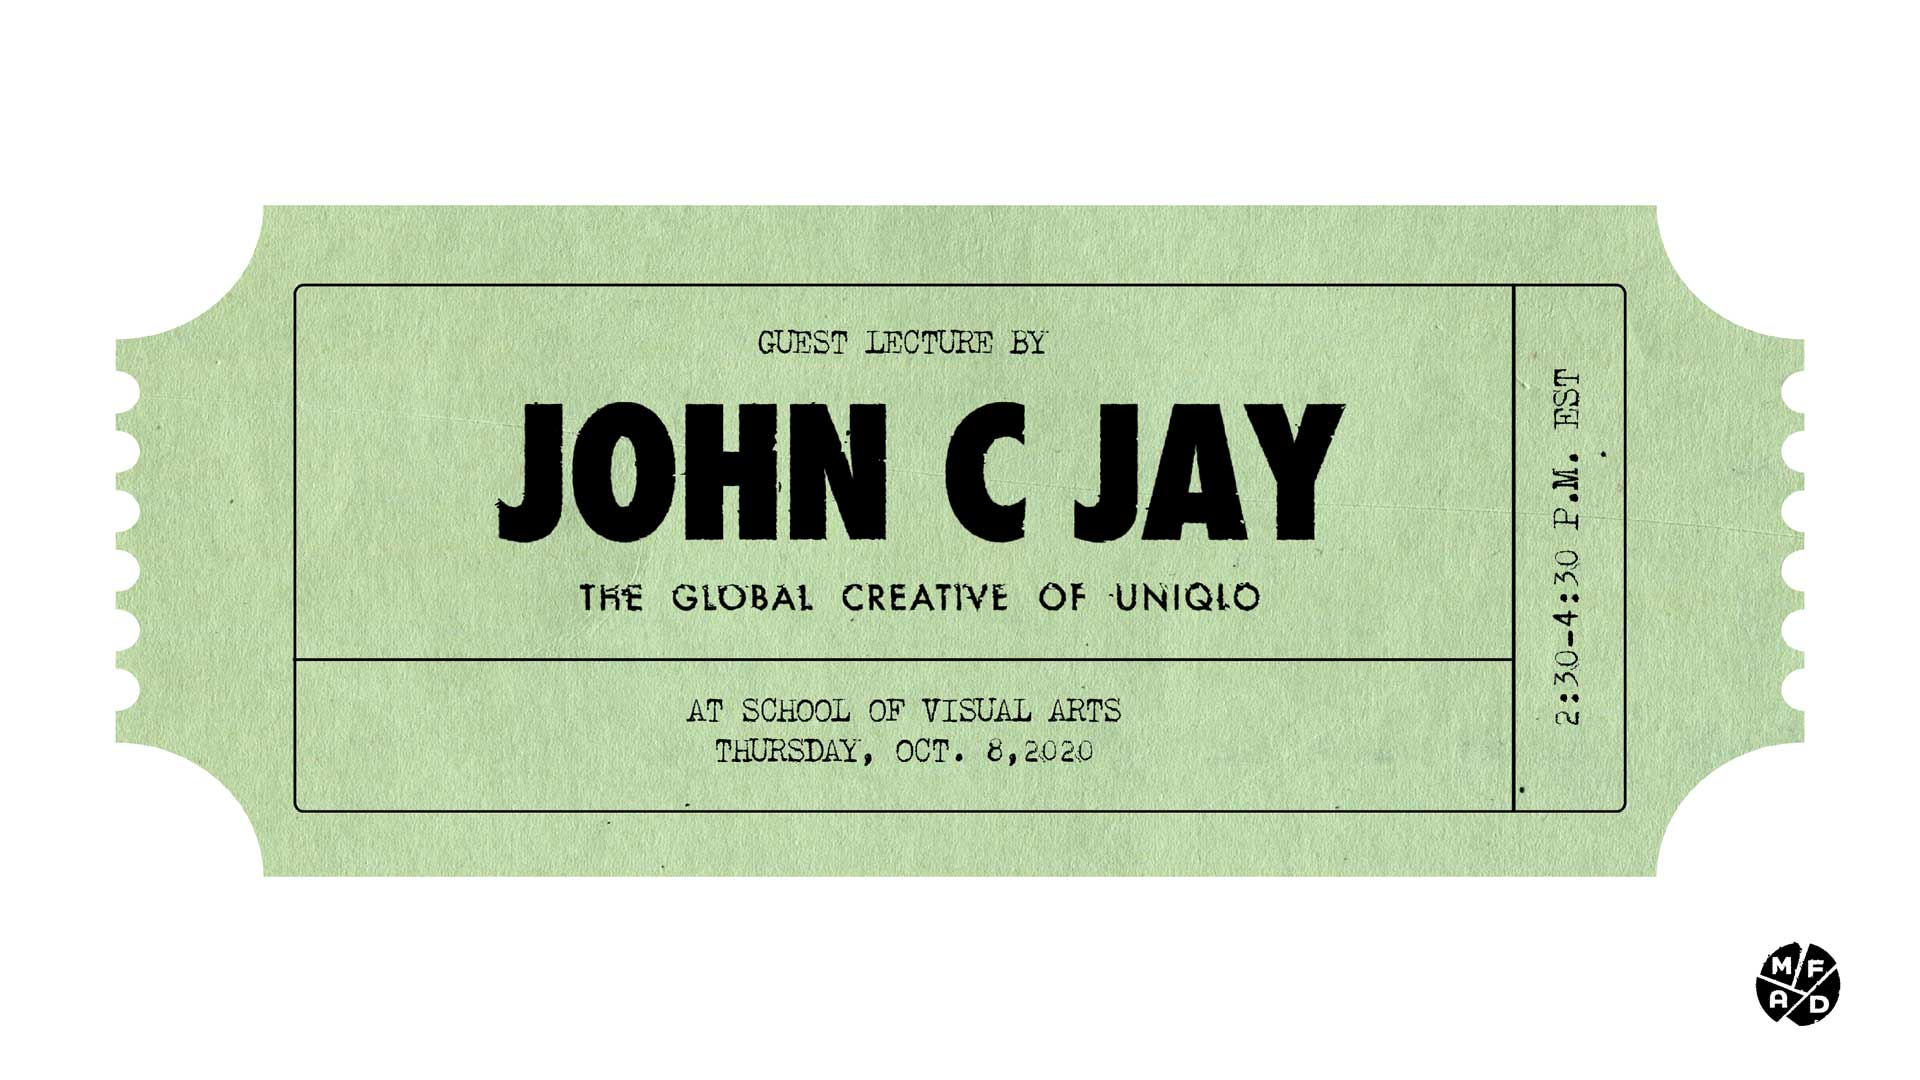 JOHN JAY LECTURE MOVIE TICKET GRAPHIC